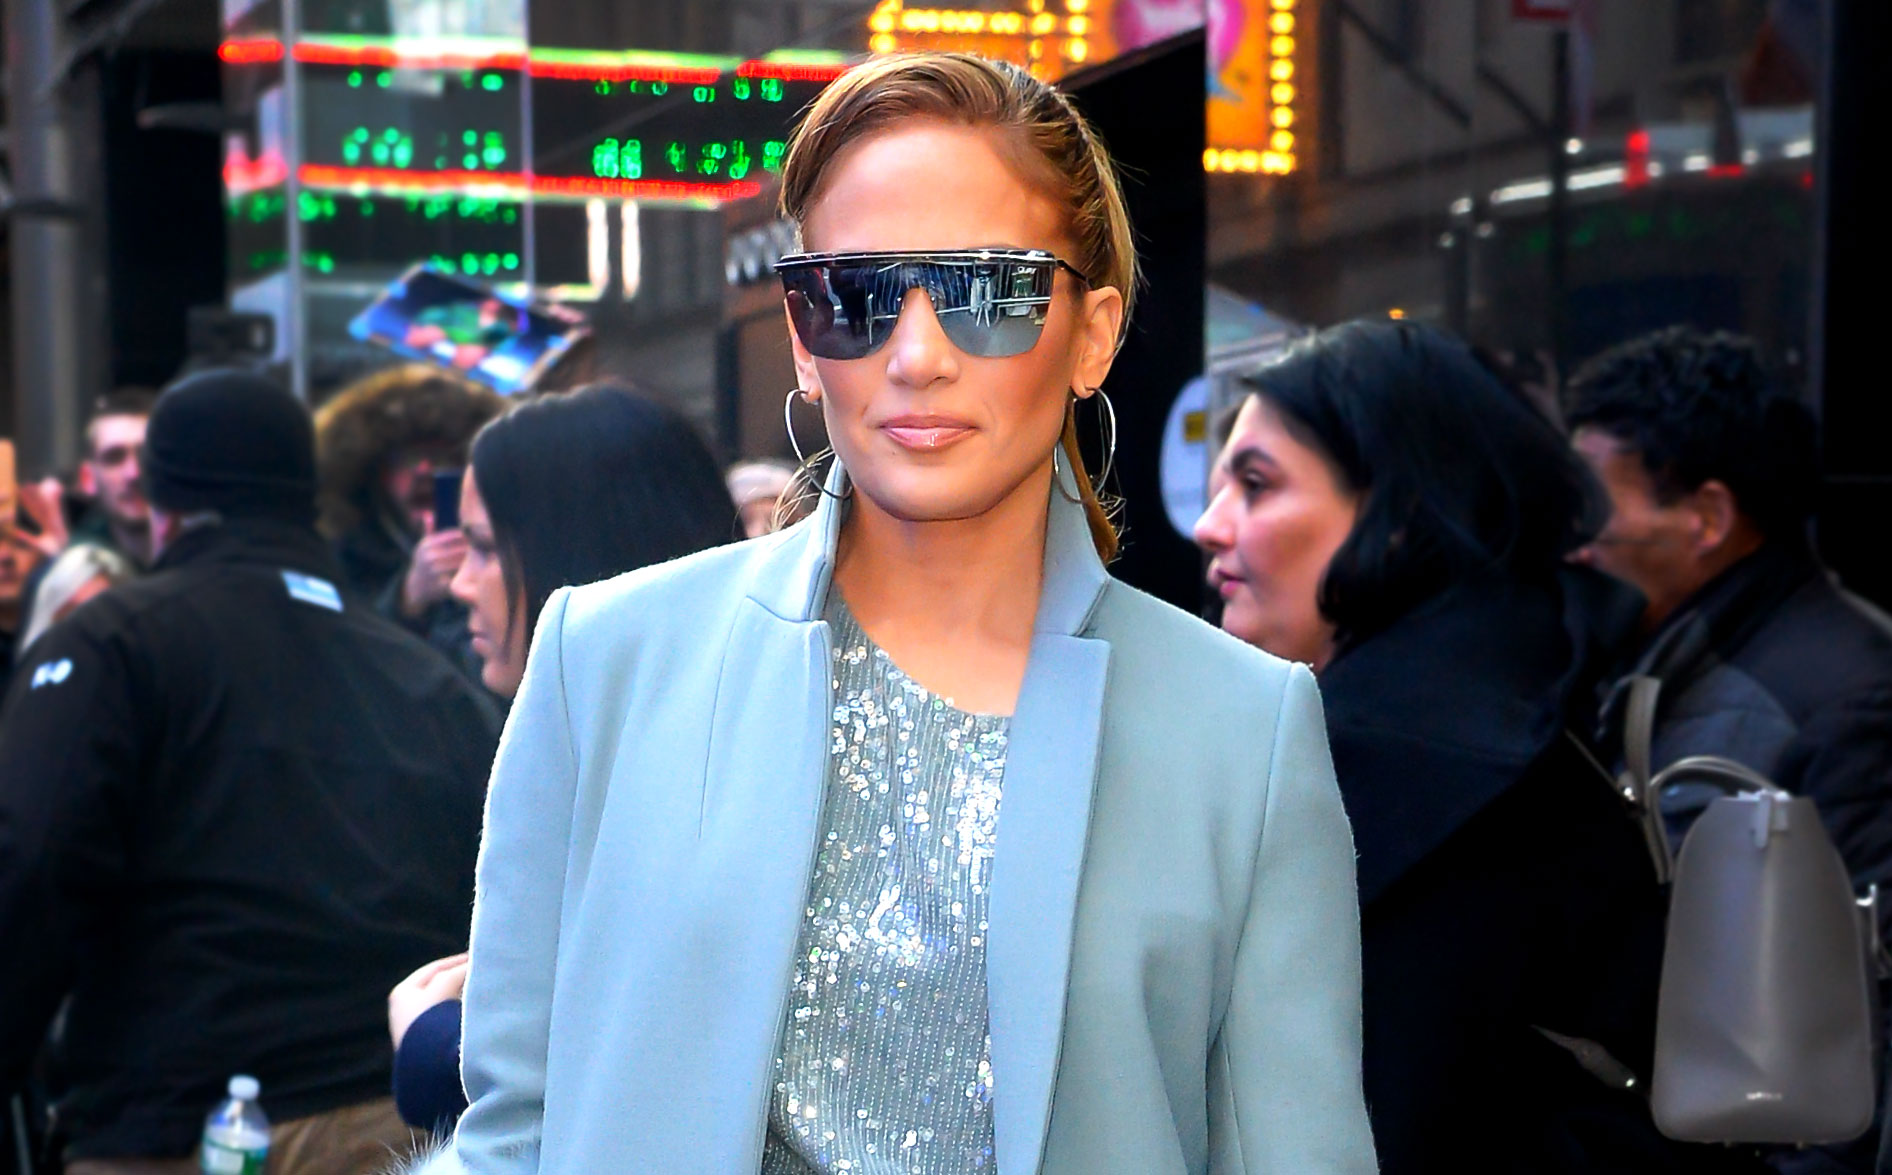 jennifer-lopez-Second-Act-press - NEW YORK, NY – DECEMBER 12: Singer Jennifer Lopez is seen outside Good Morning America on December 12, 2018 in New York City. (Photo by Raymond Hall/GC Images)